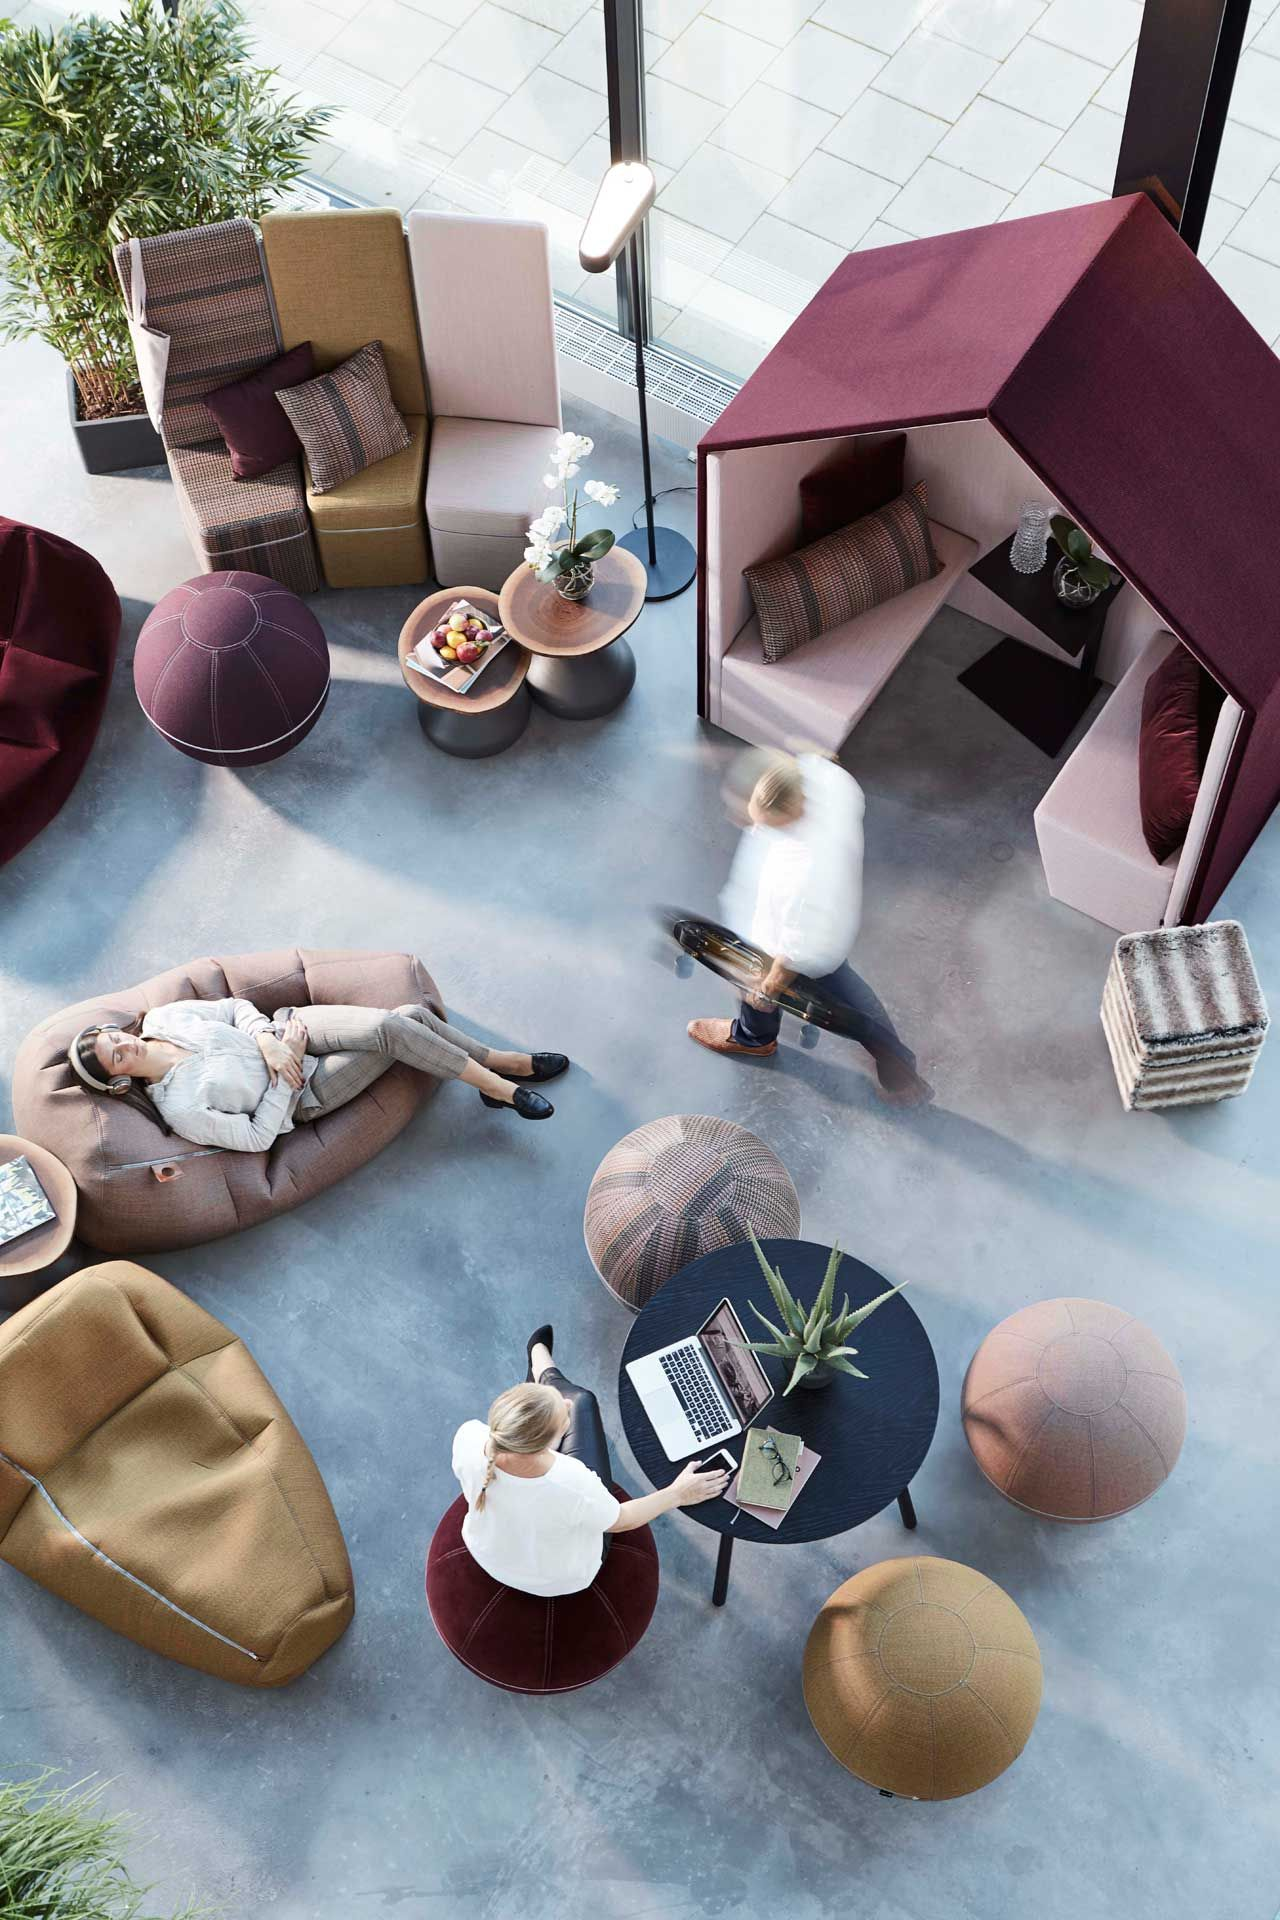 Scandinavian Spaces Reimagines the Workplace with The Hut Lounge